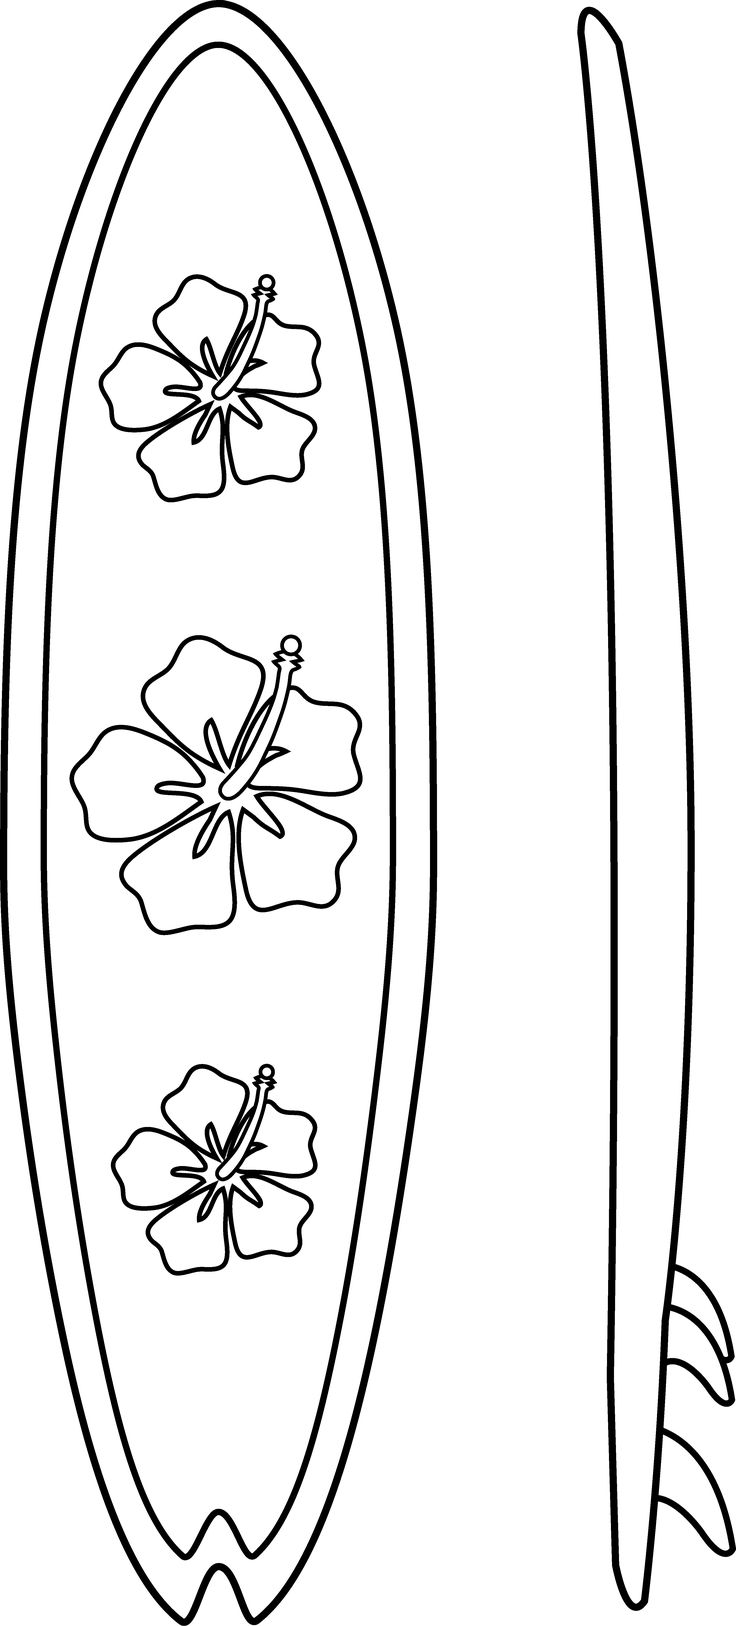 25+ great ideas about Surfboard craft on Pinterest